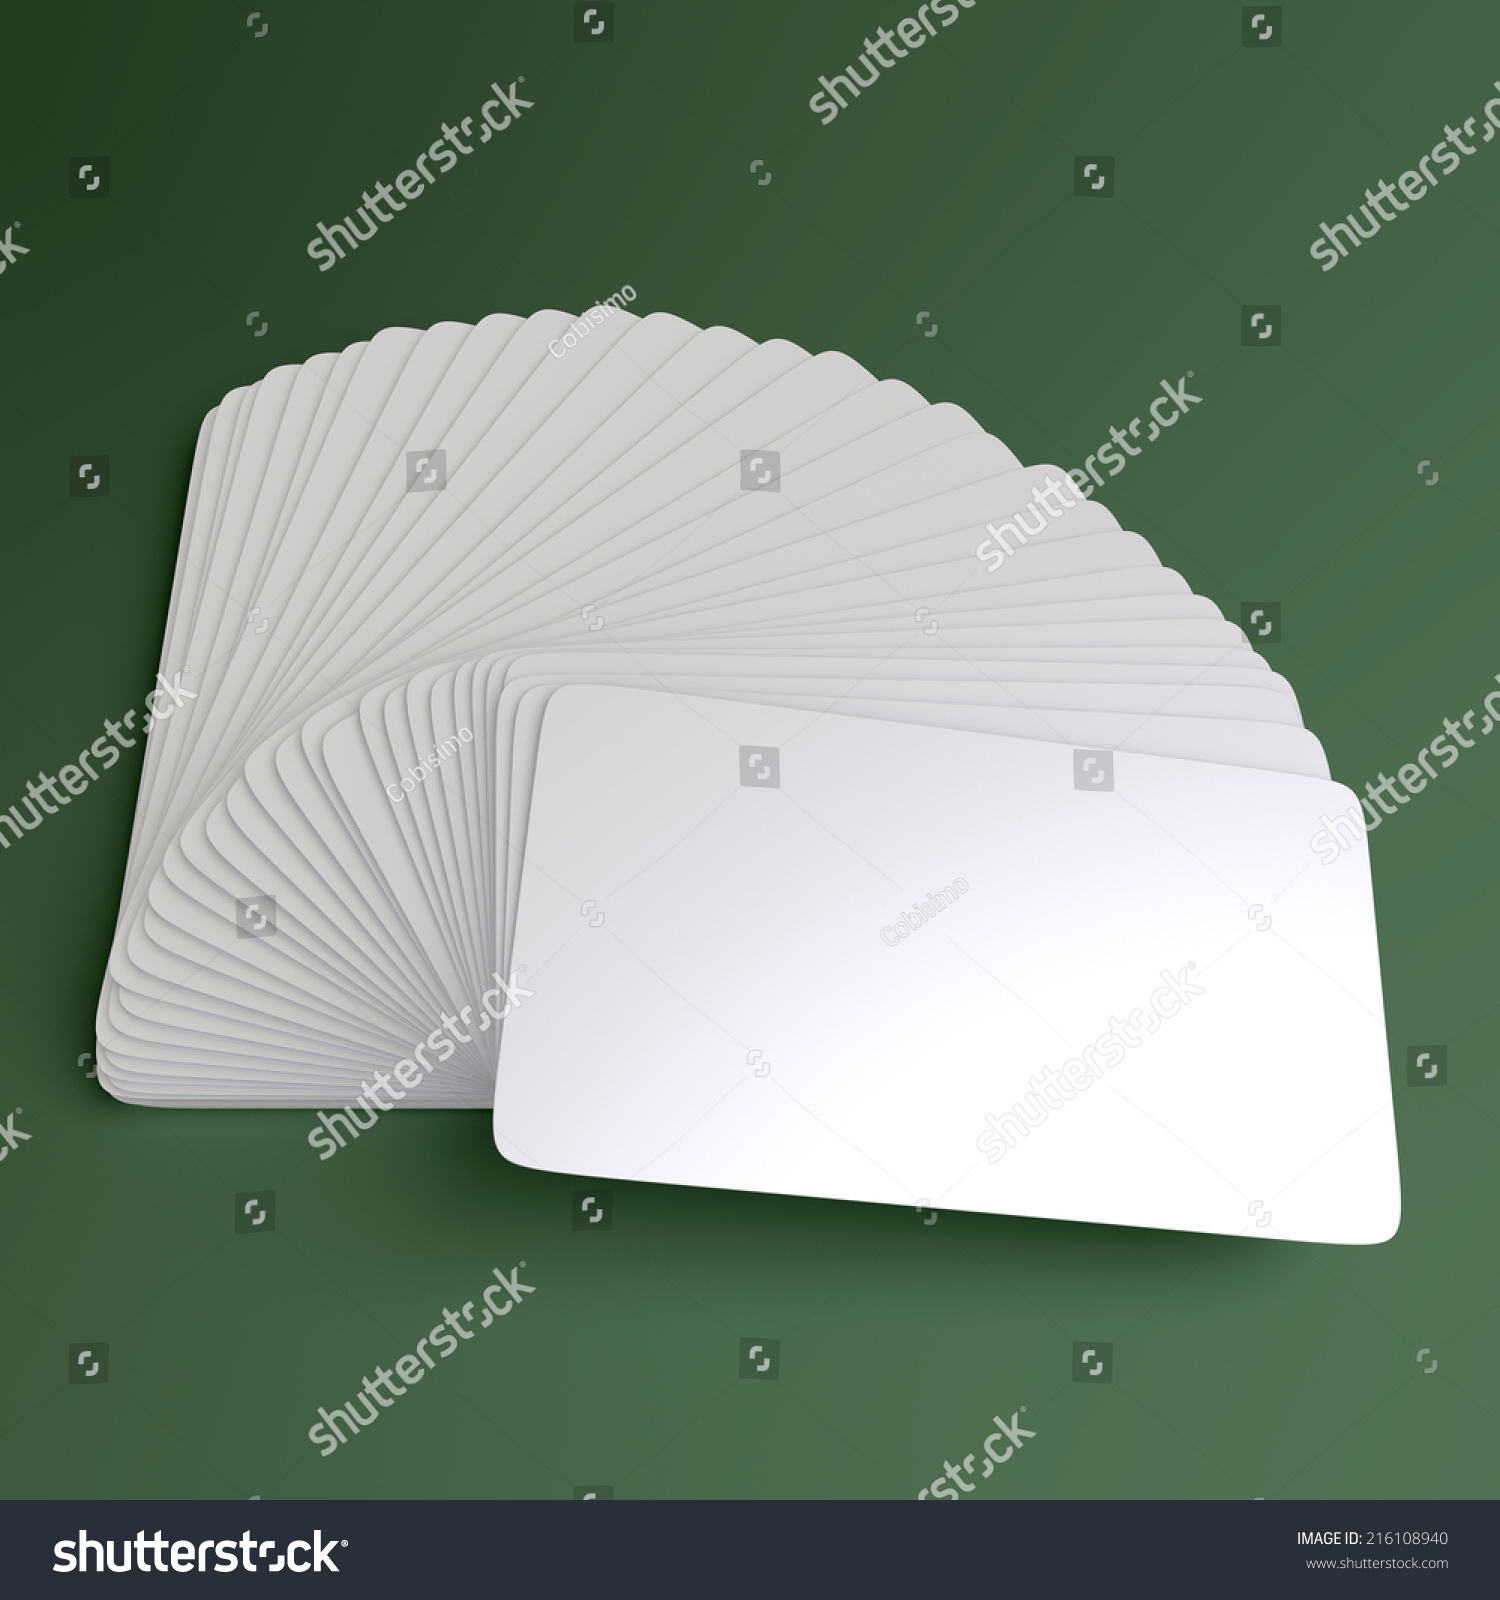 Business cards blank mock fan stock illustration 216108940 business cards blank mock up fan reheart Image collections